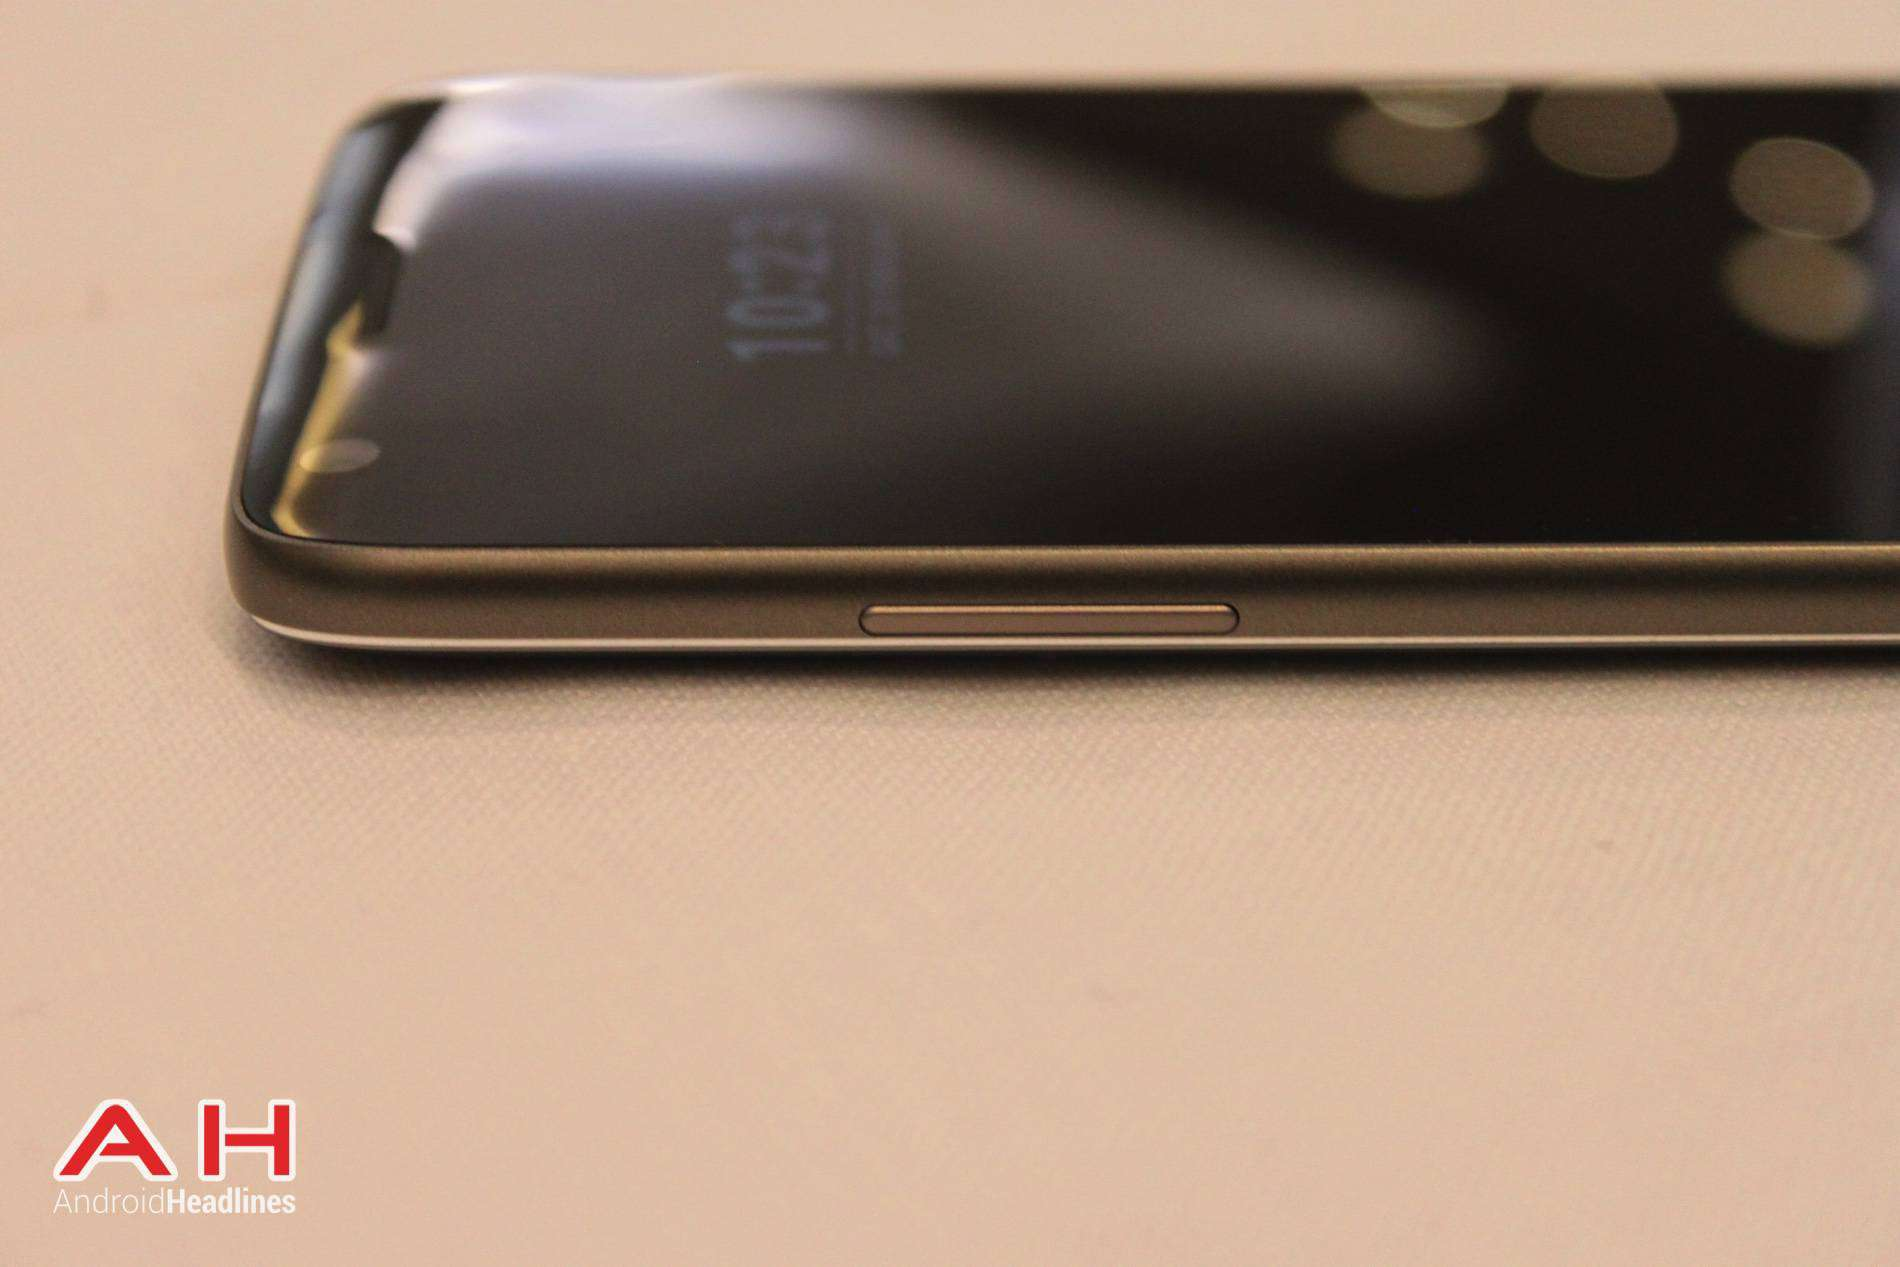 LG G5 Hands On MWC AH 09